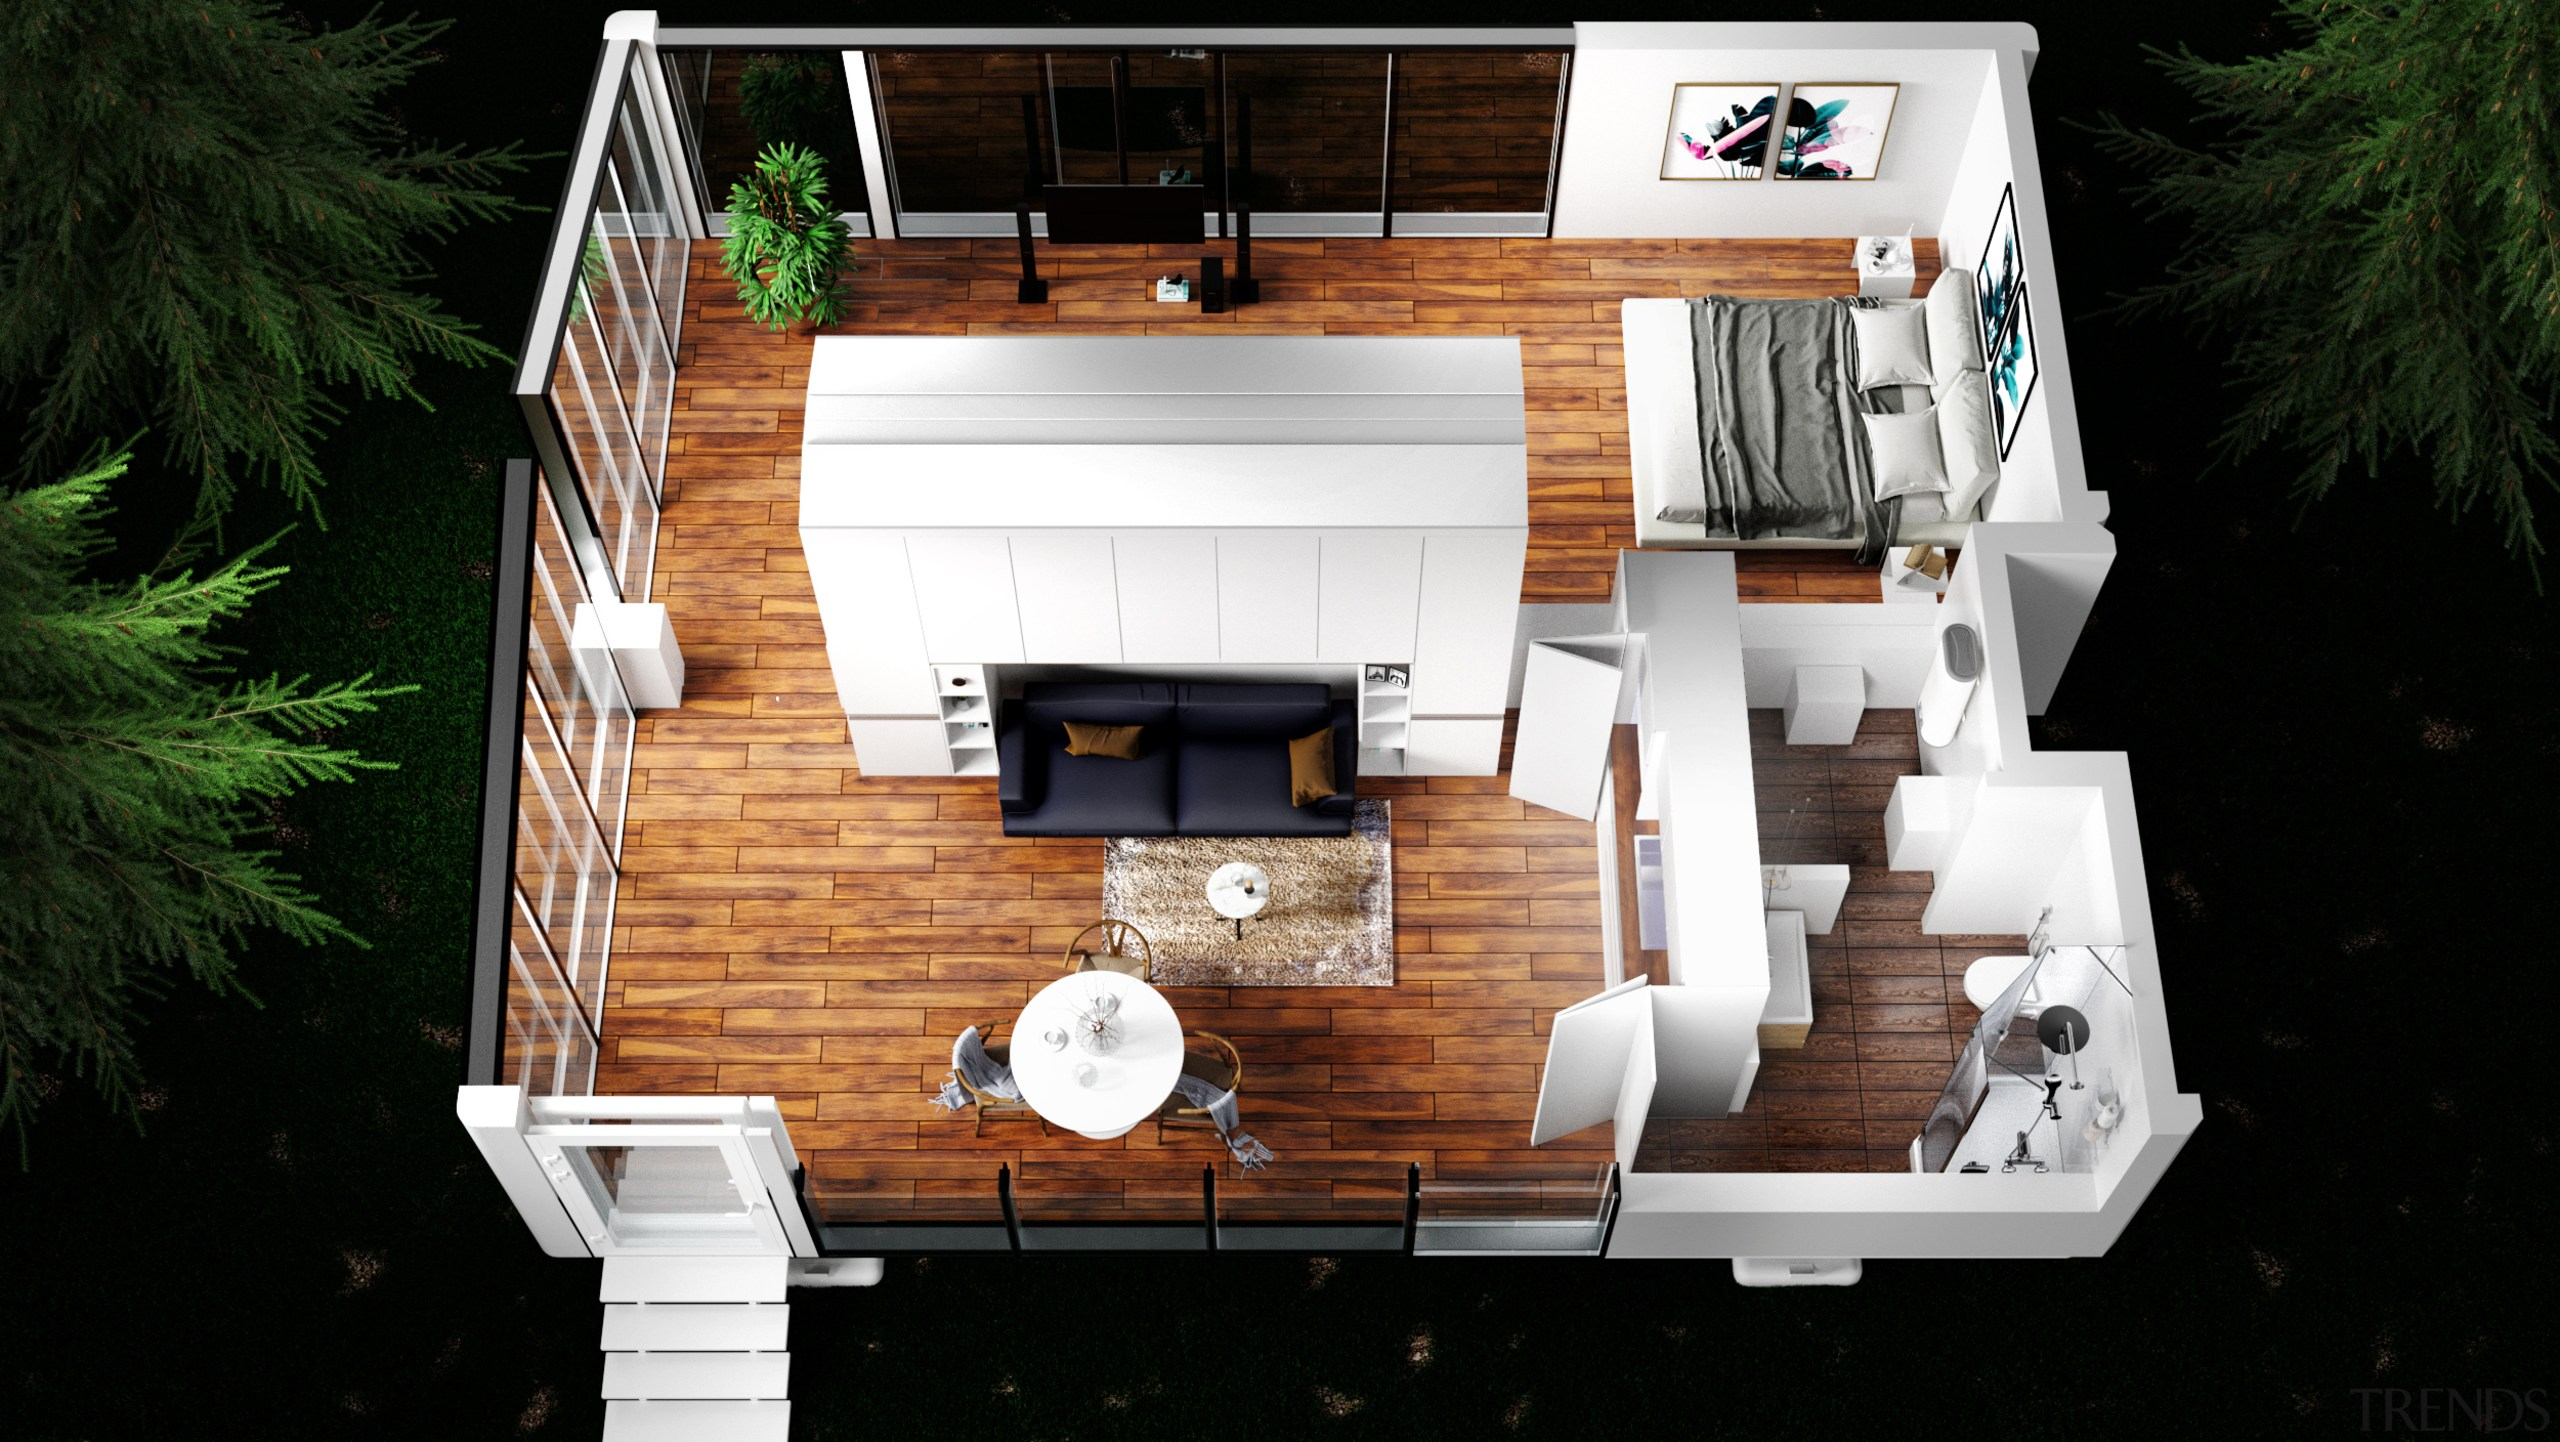 The living room in the larger, family-sized version architecture, backyard, building, design, floor, floor plan, flooring, home, house, interior design, log cabin, property, real estate, room, scale model, black